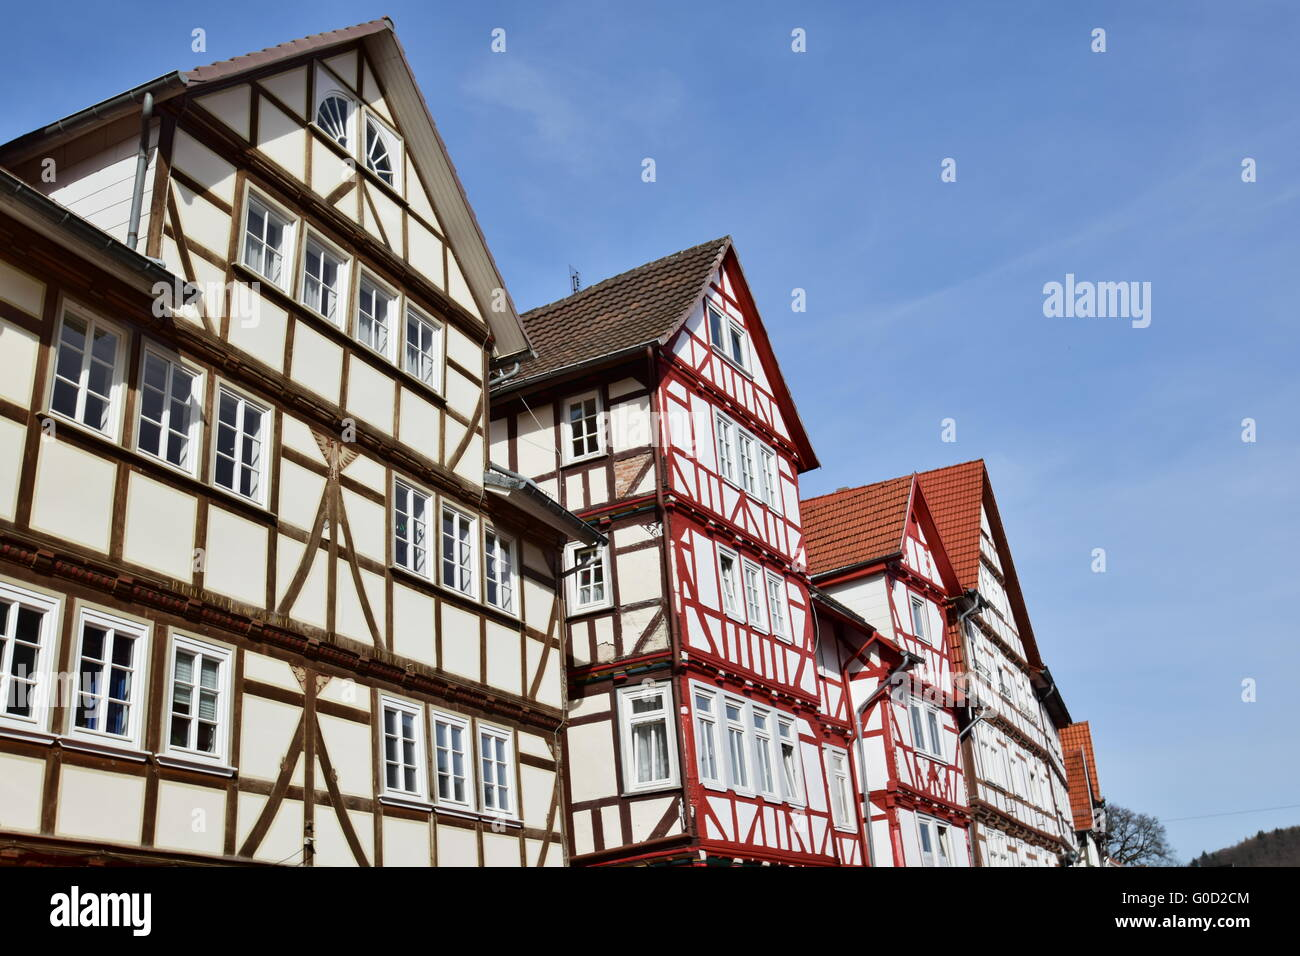 Old half-timbered house in Eschwege - Stock Image